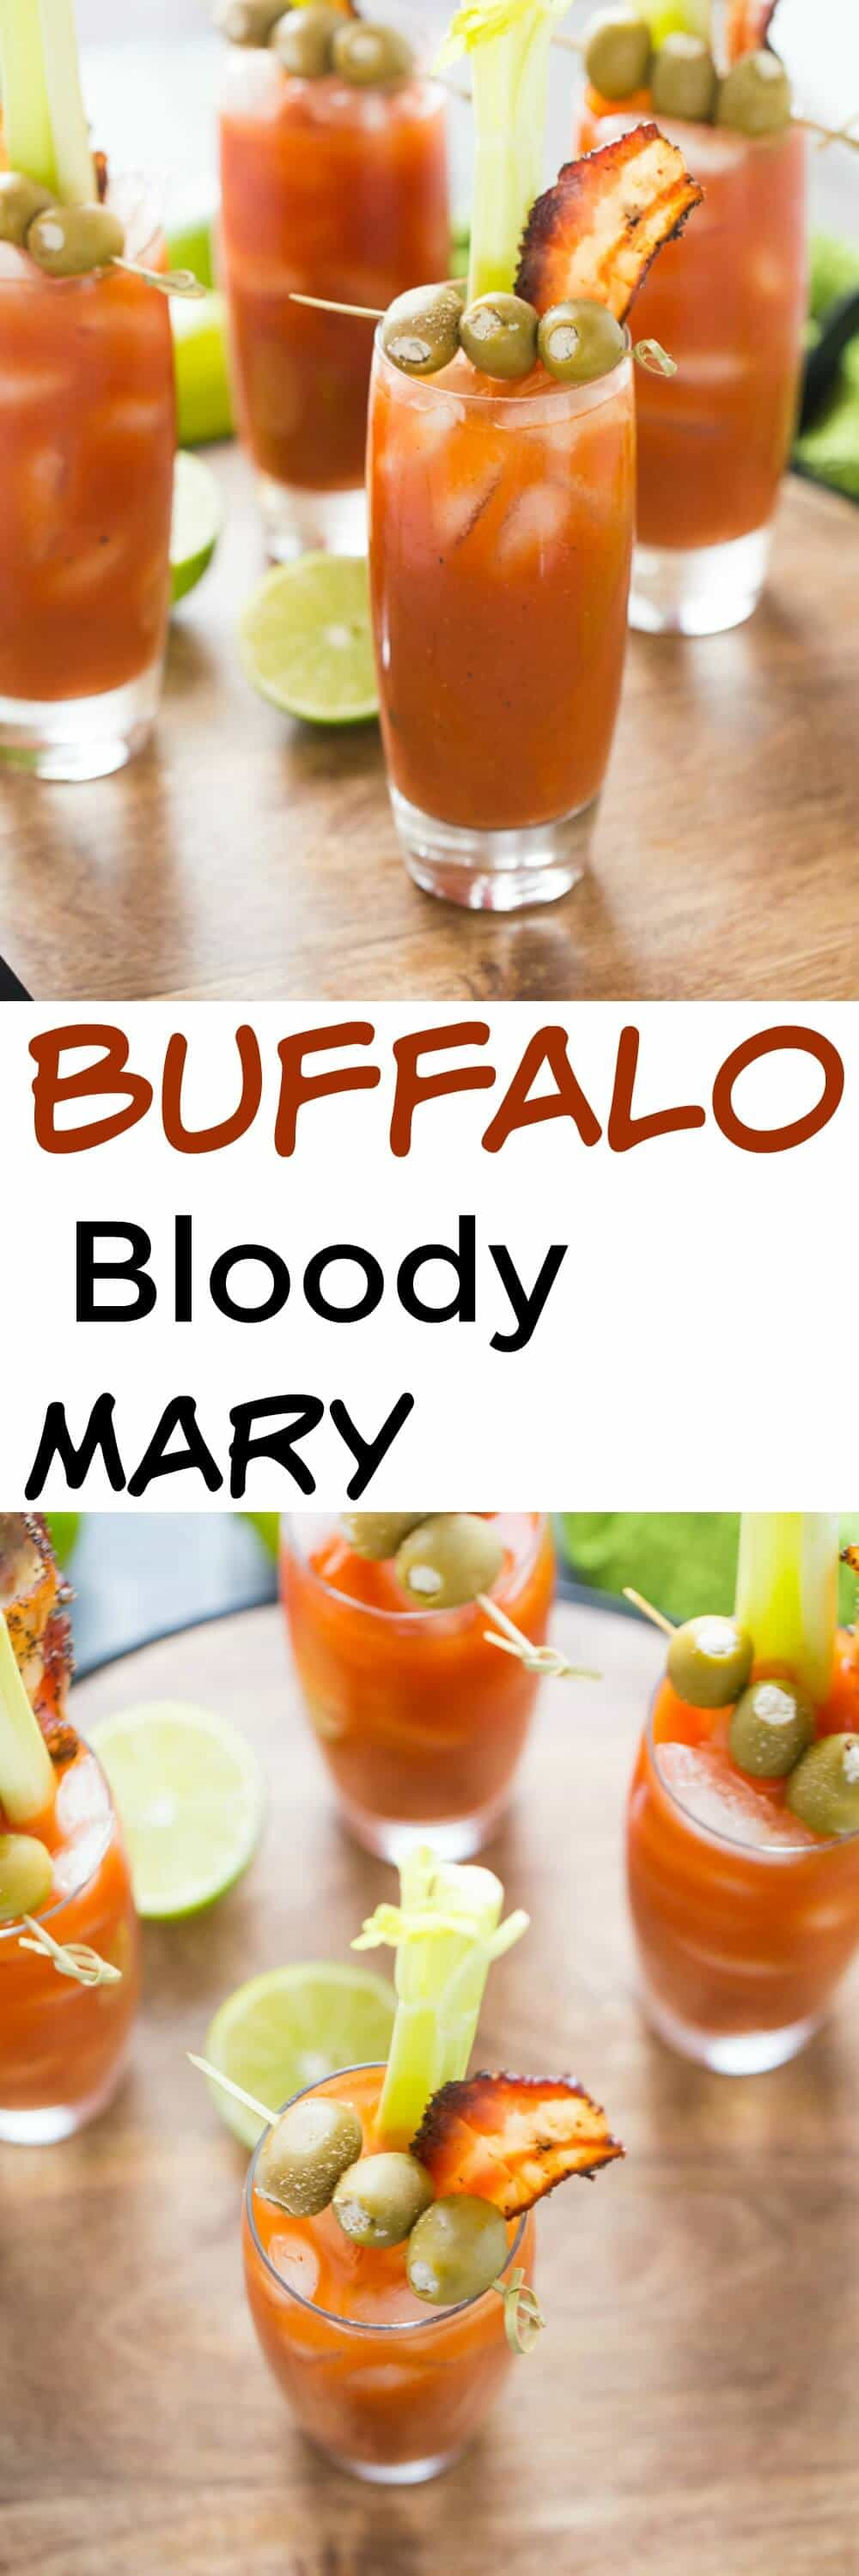 This bloody Mary is one of a kind! Spicy Buffalo sauce is mixed into each cocktail. Finish these drinks off with blue cheese stuffed olives and peppery bacon! lemonsforlulu.com